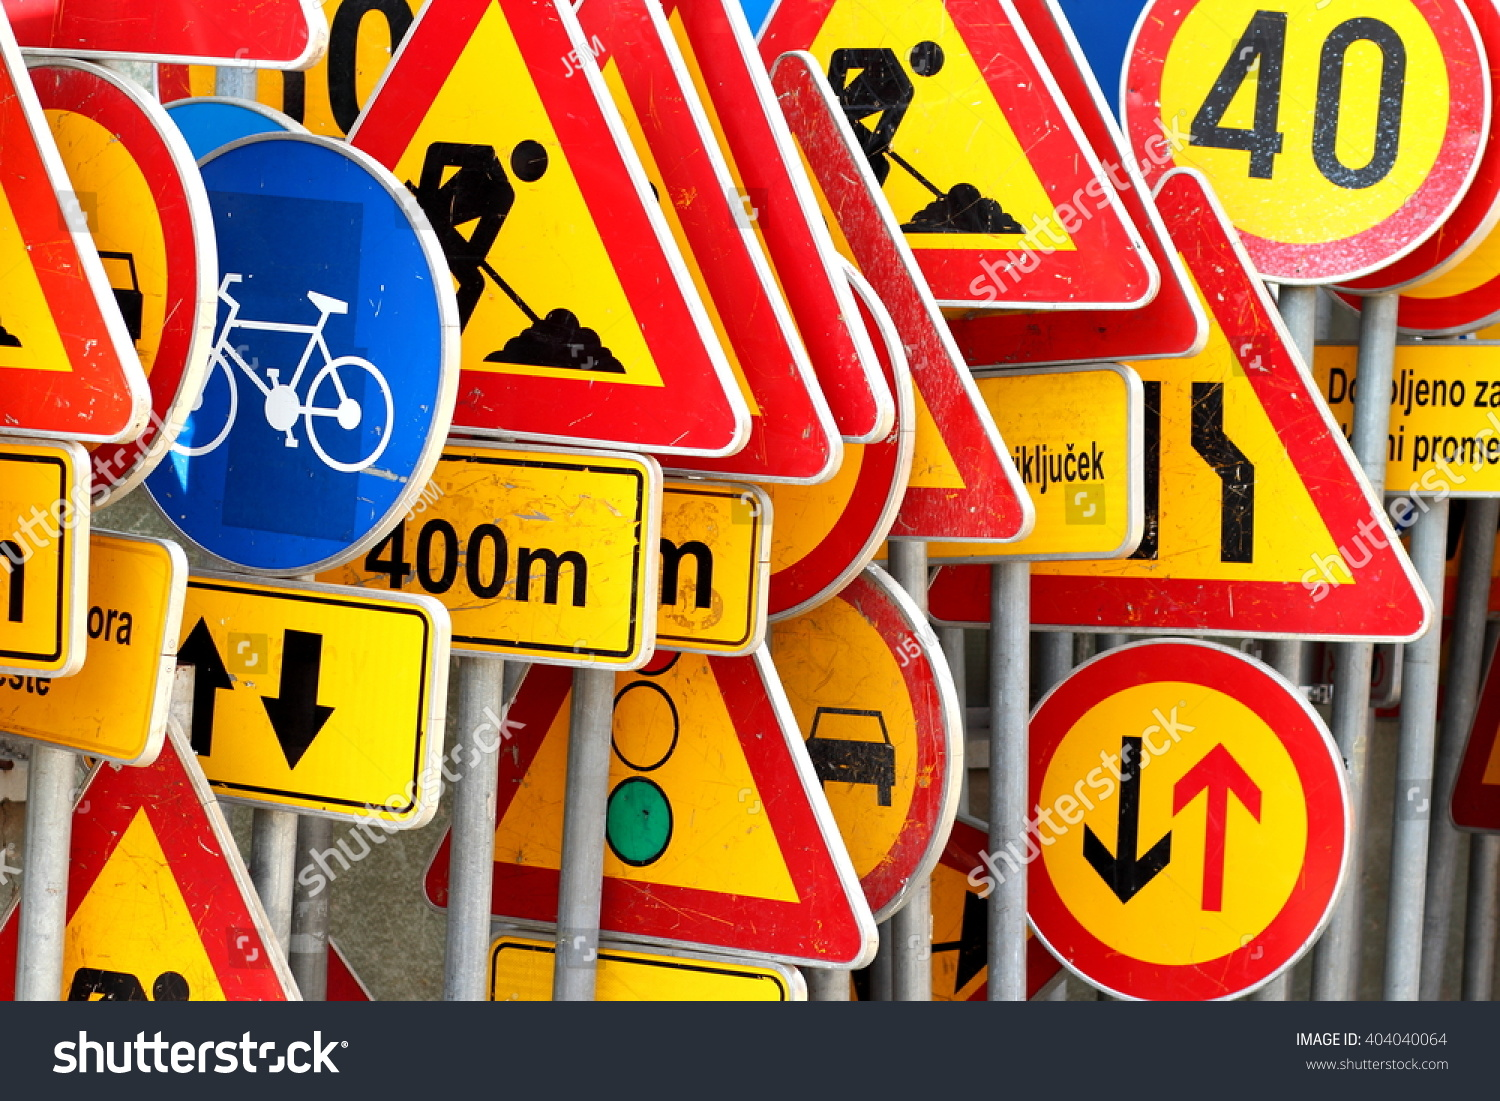 stock-photo-different-colored-traffic-si